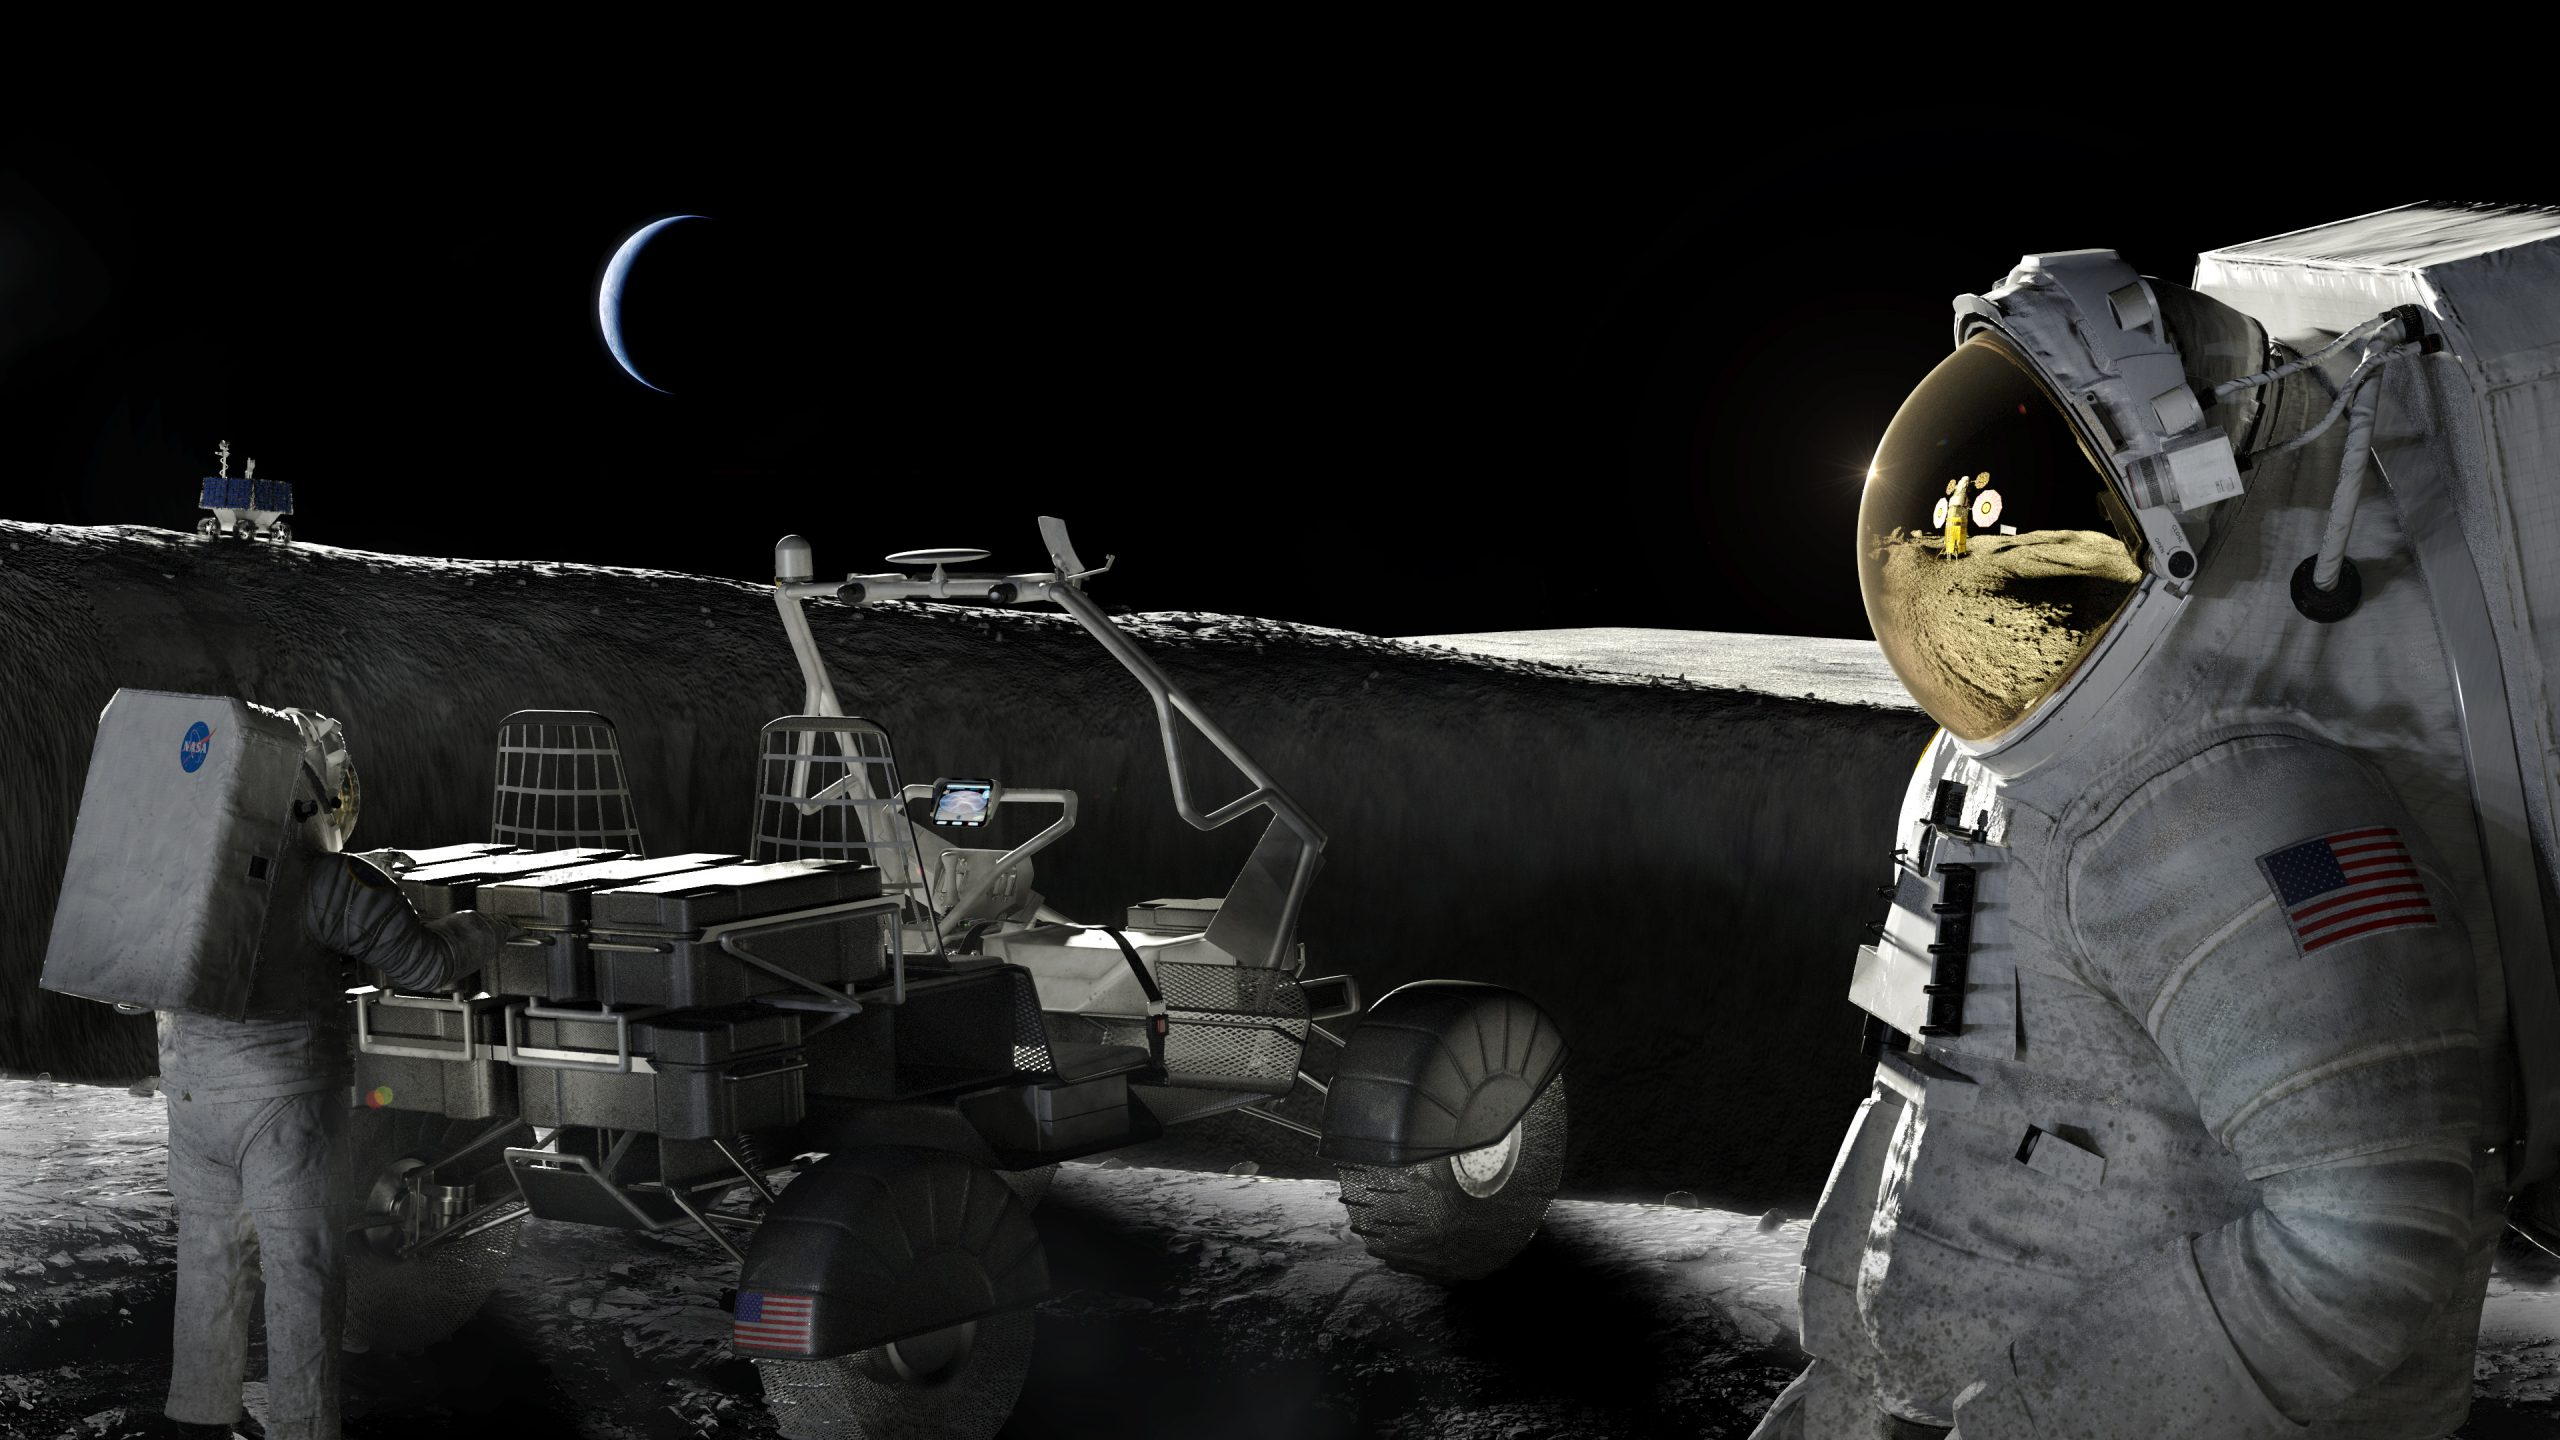 An illustration of astronauts on the Moon.